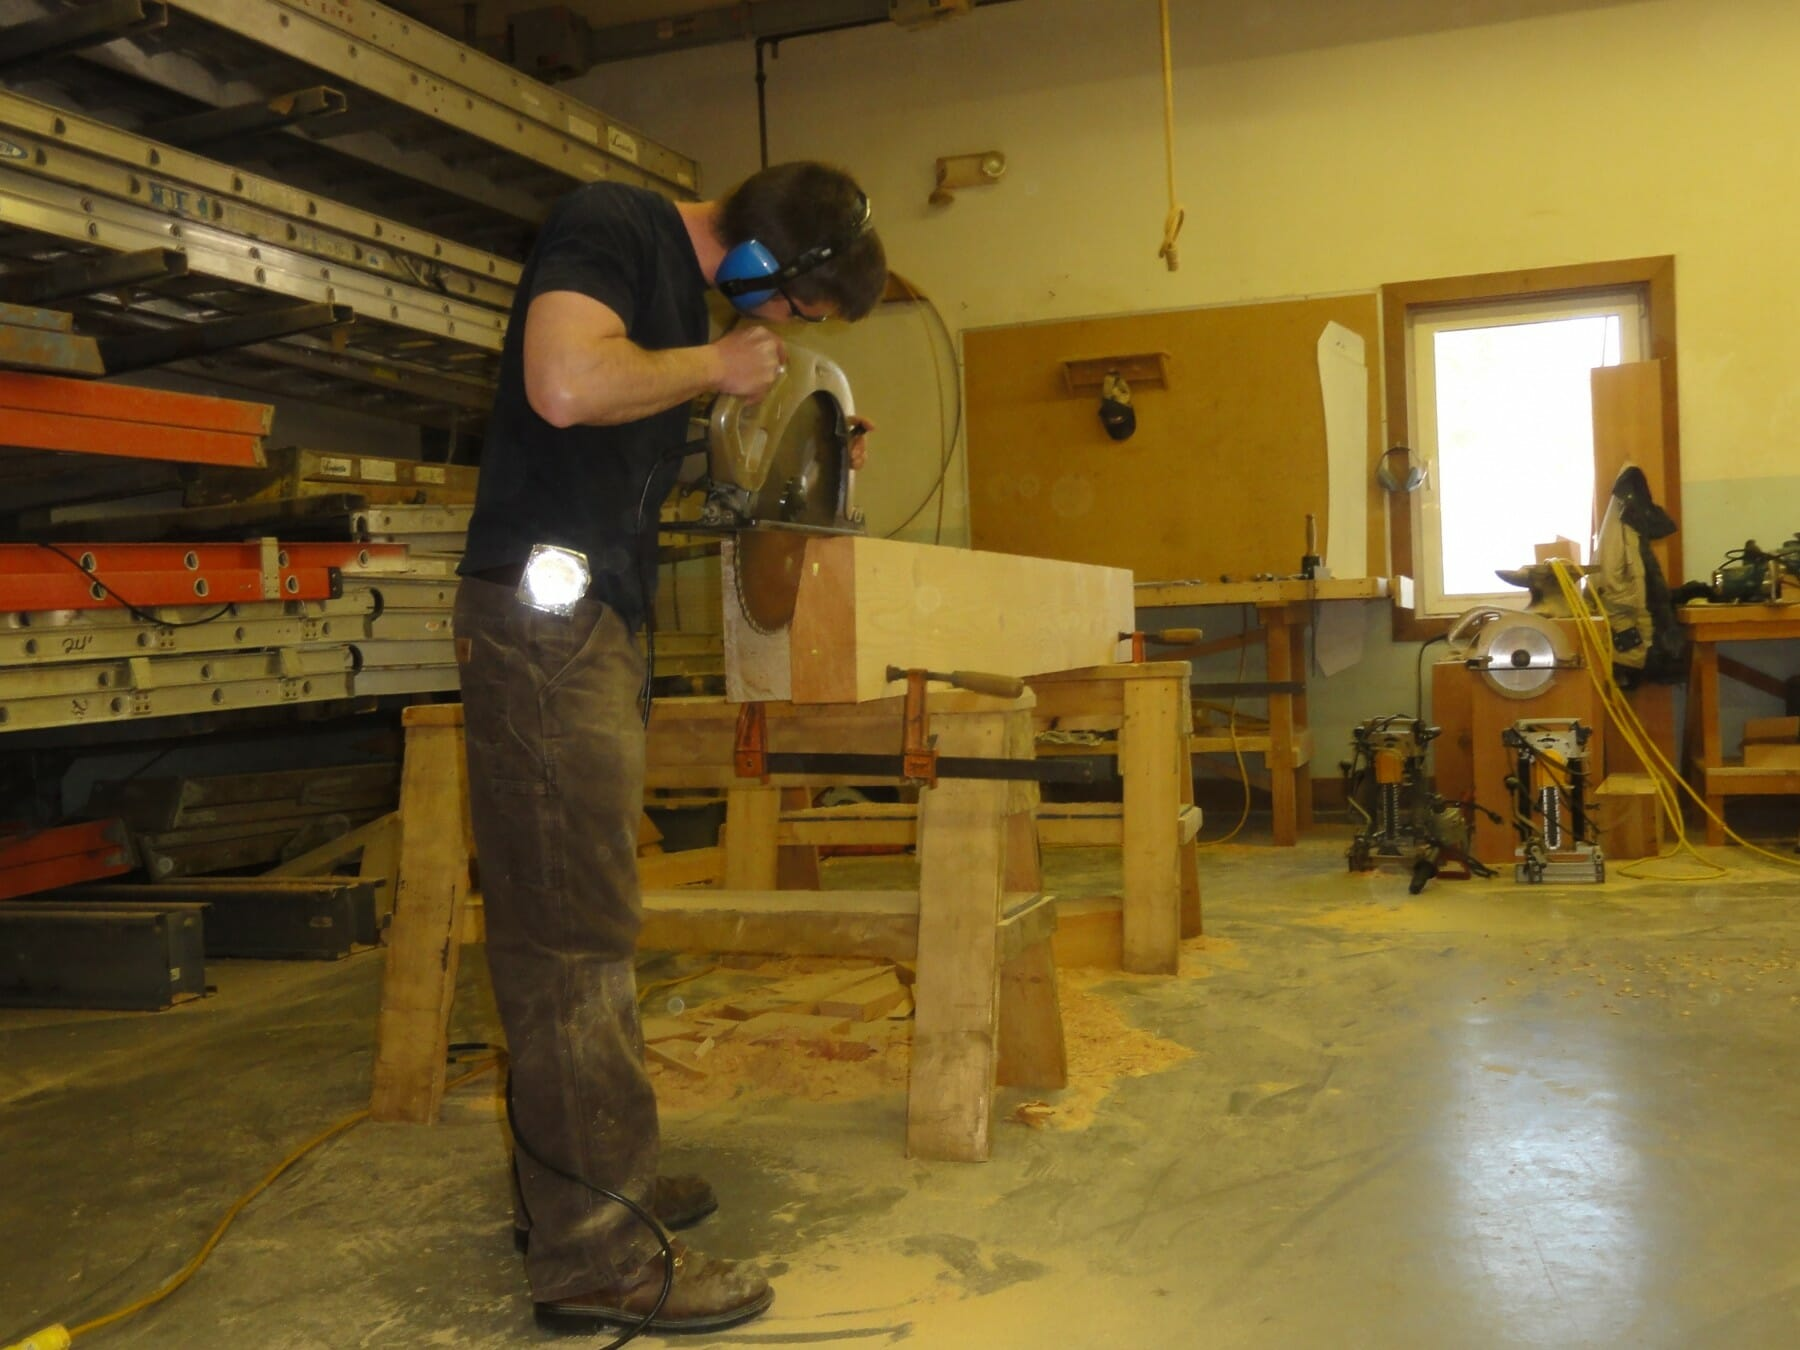 Beam saw for timber framing.